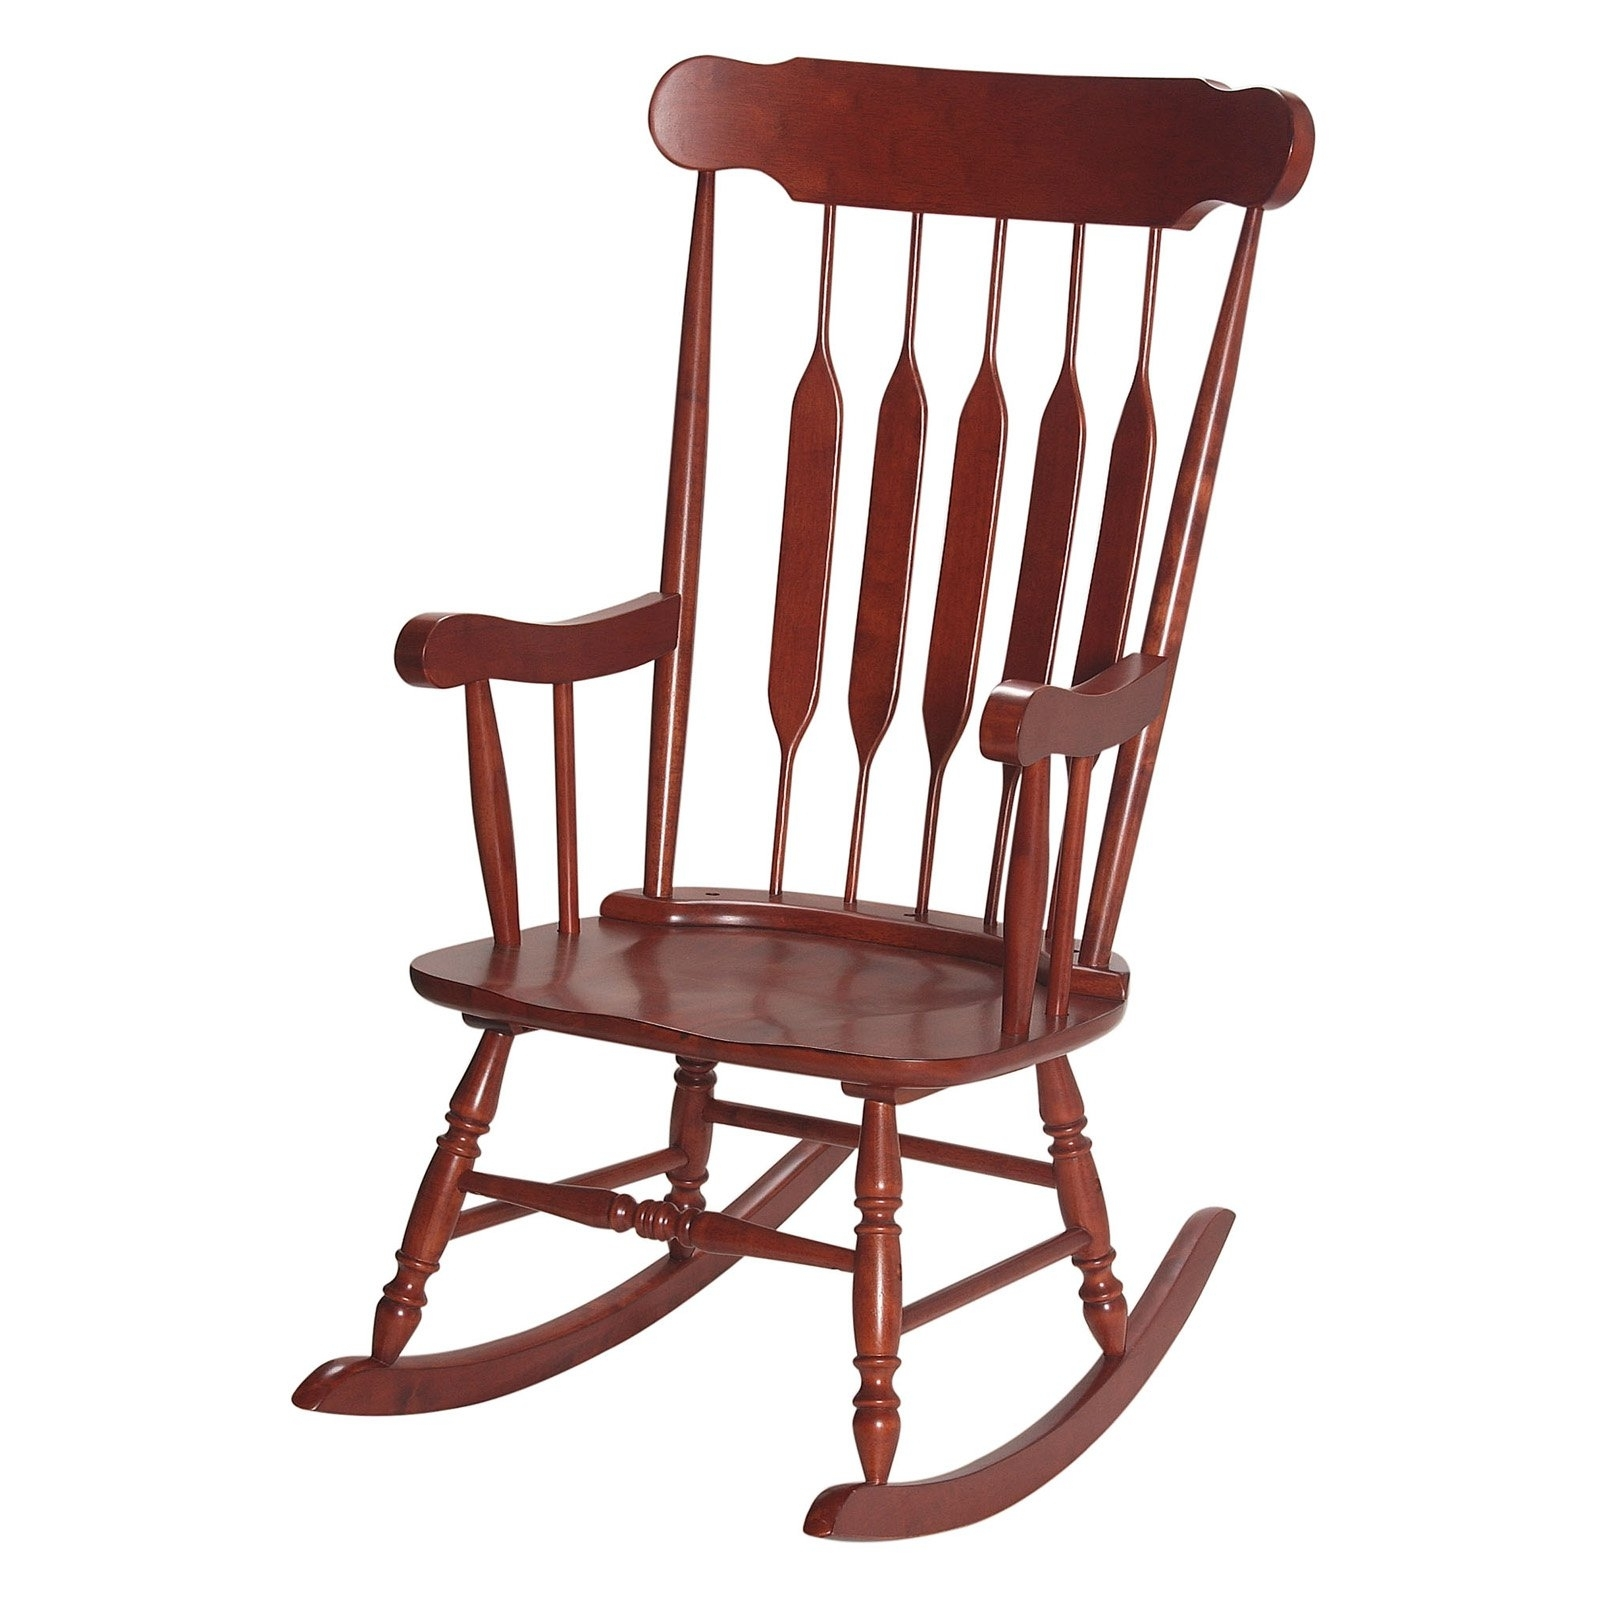 Rocking Chairs For Adults With Recent Gift Mark Mission Style Wooden Rocking Chair With Upholstered Seat (View 3 of 15)